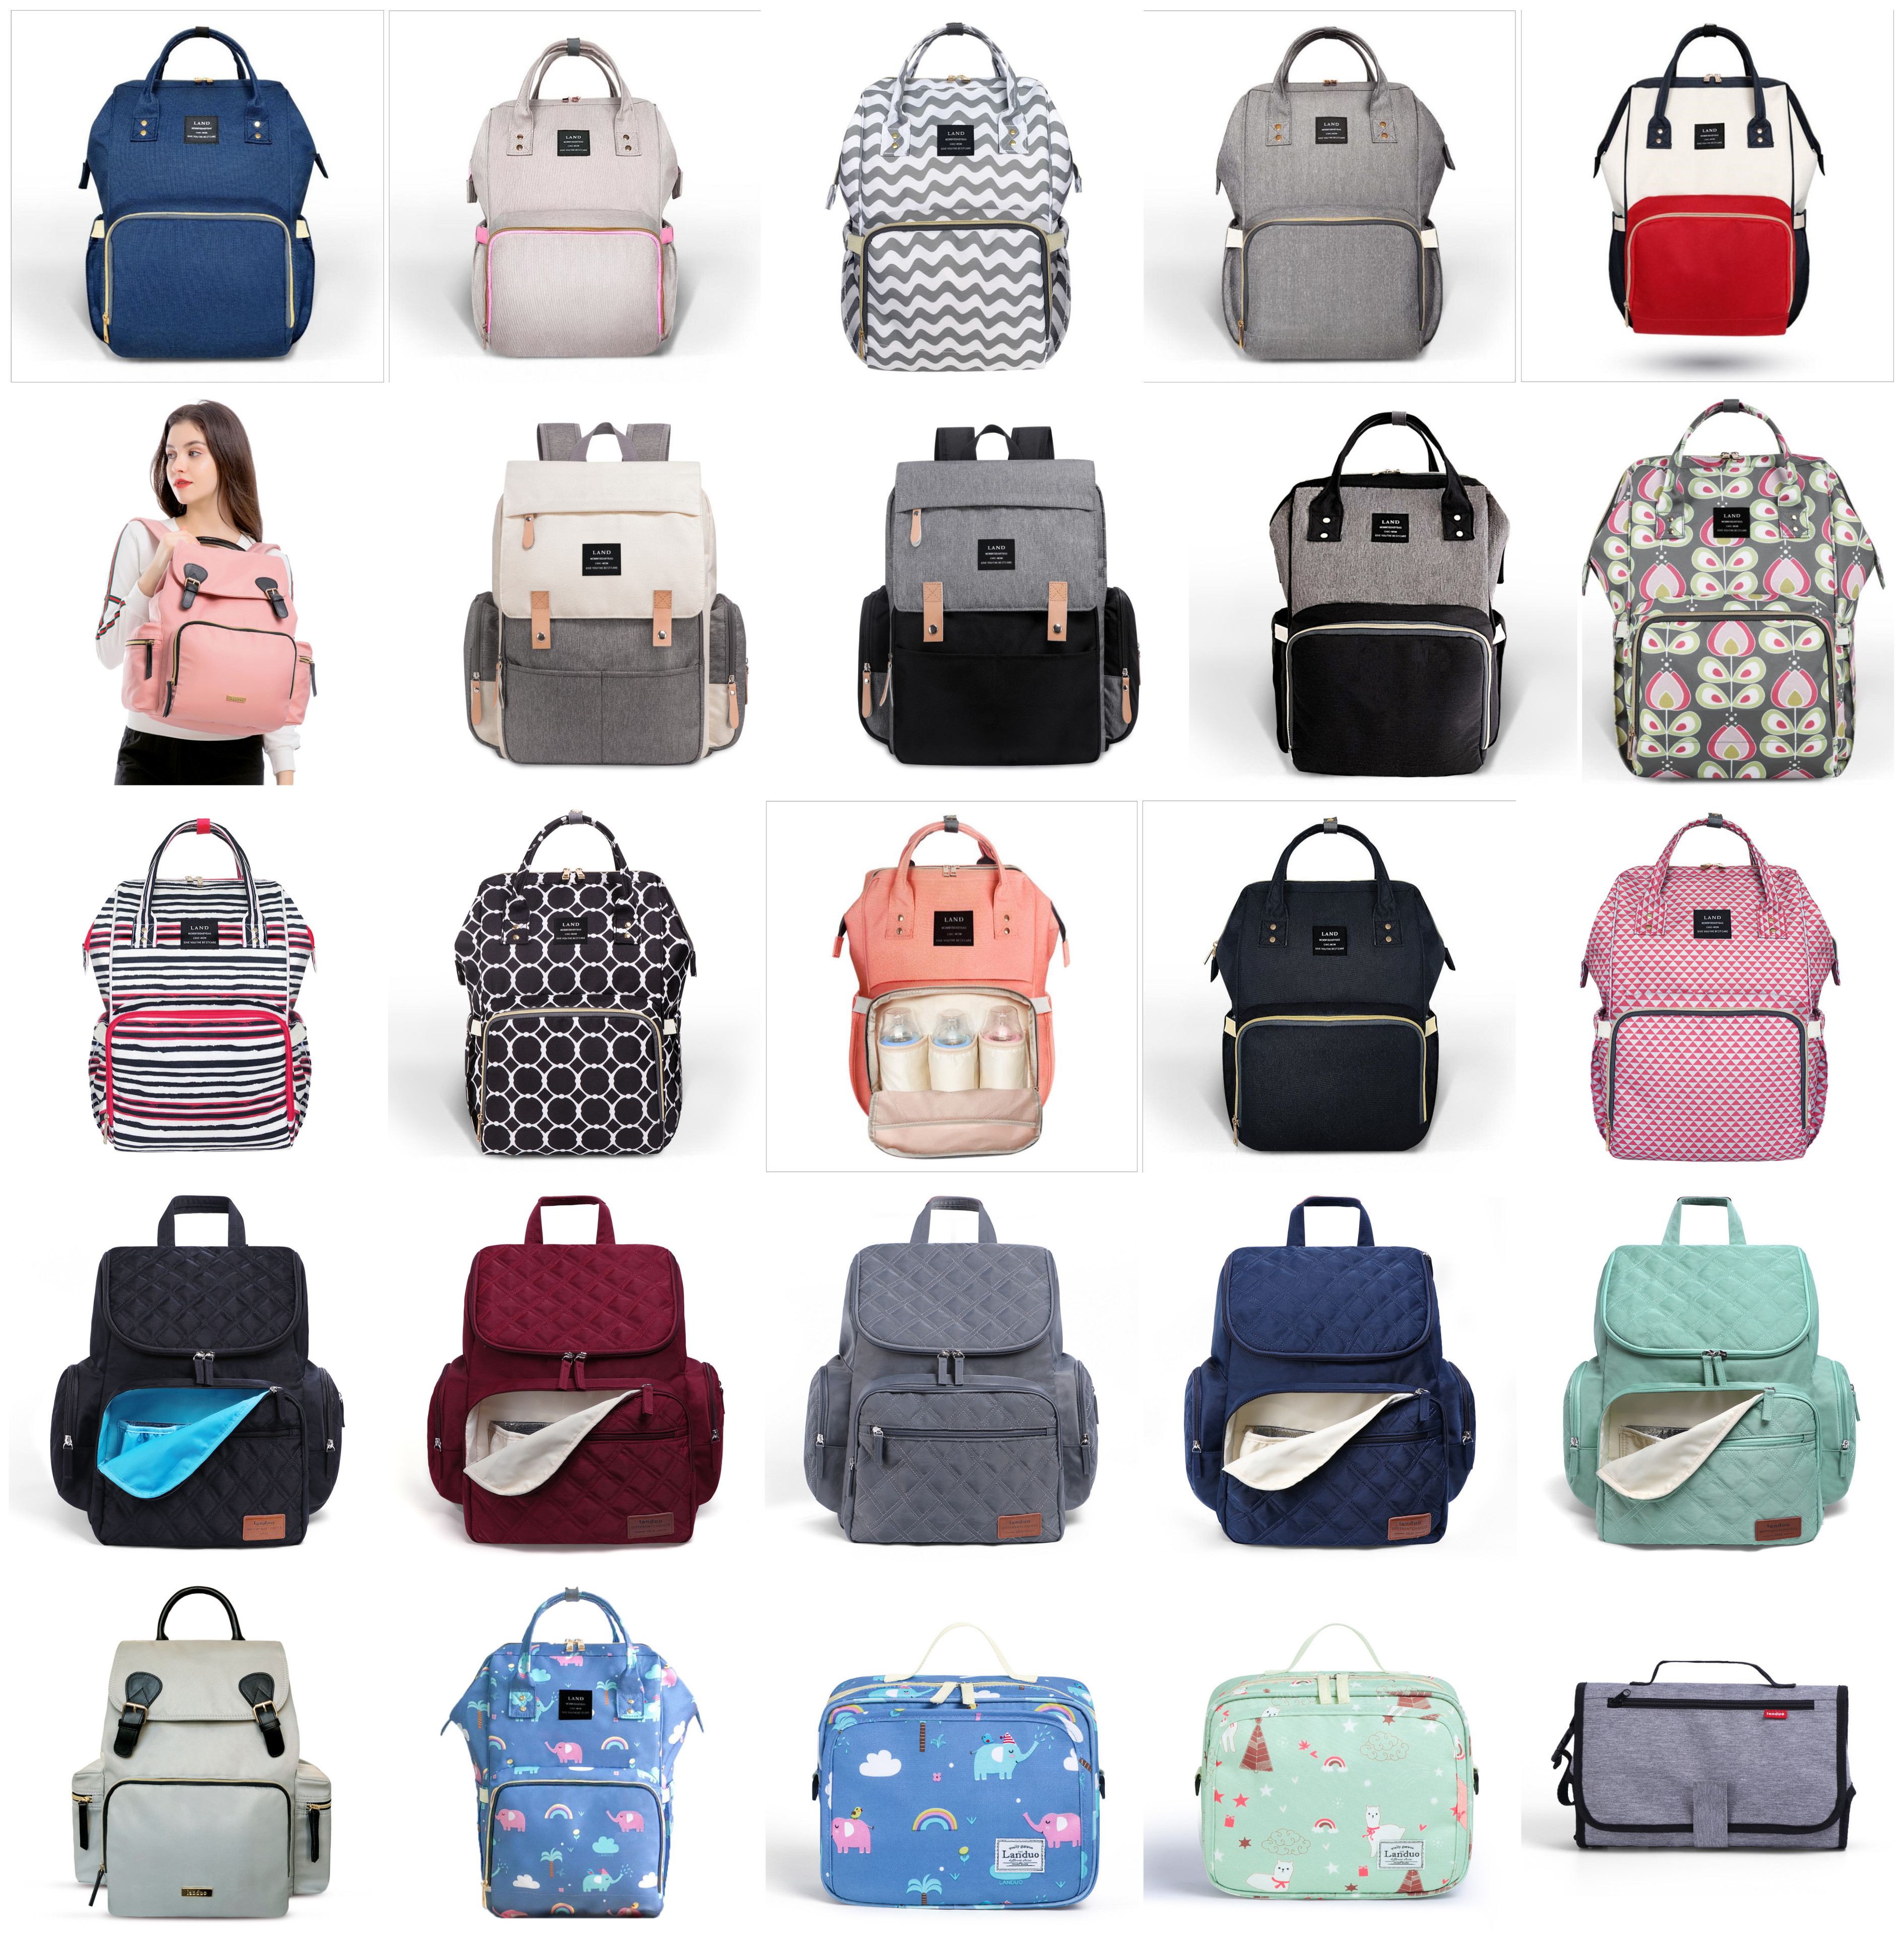 Authentic LAND Mommy Diaper Bags Mother Large Capacity Travel Nappy Backpacks with anti loss zipper Baby Innrech Market.com